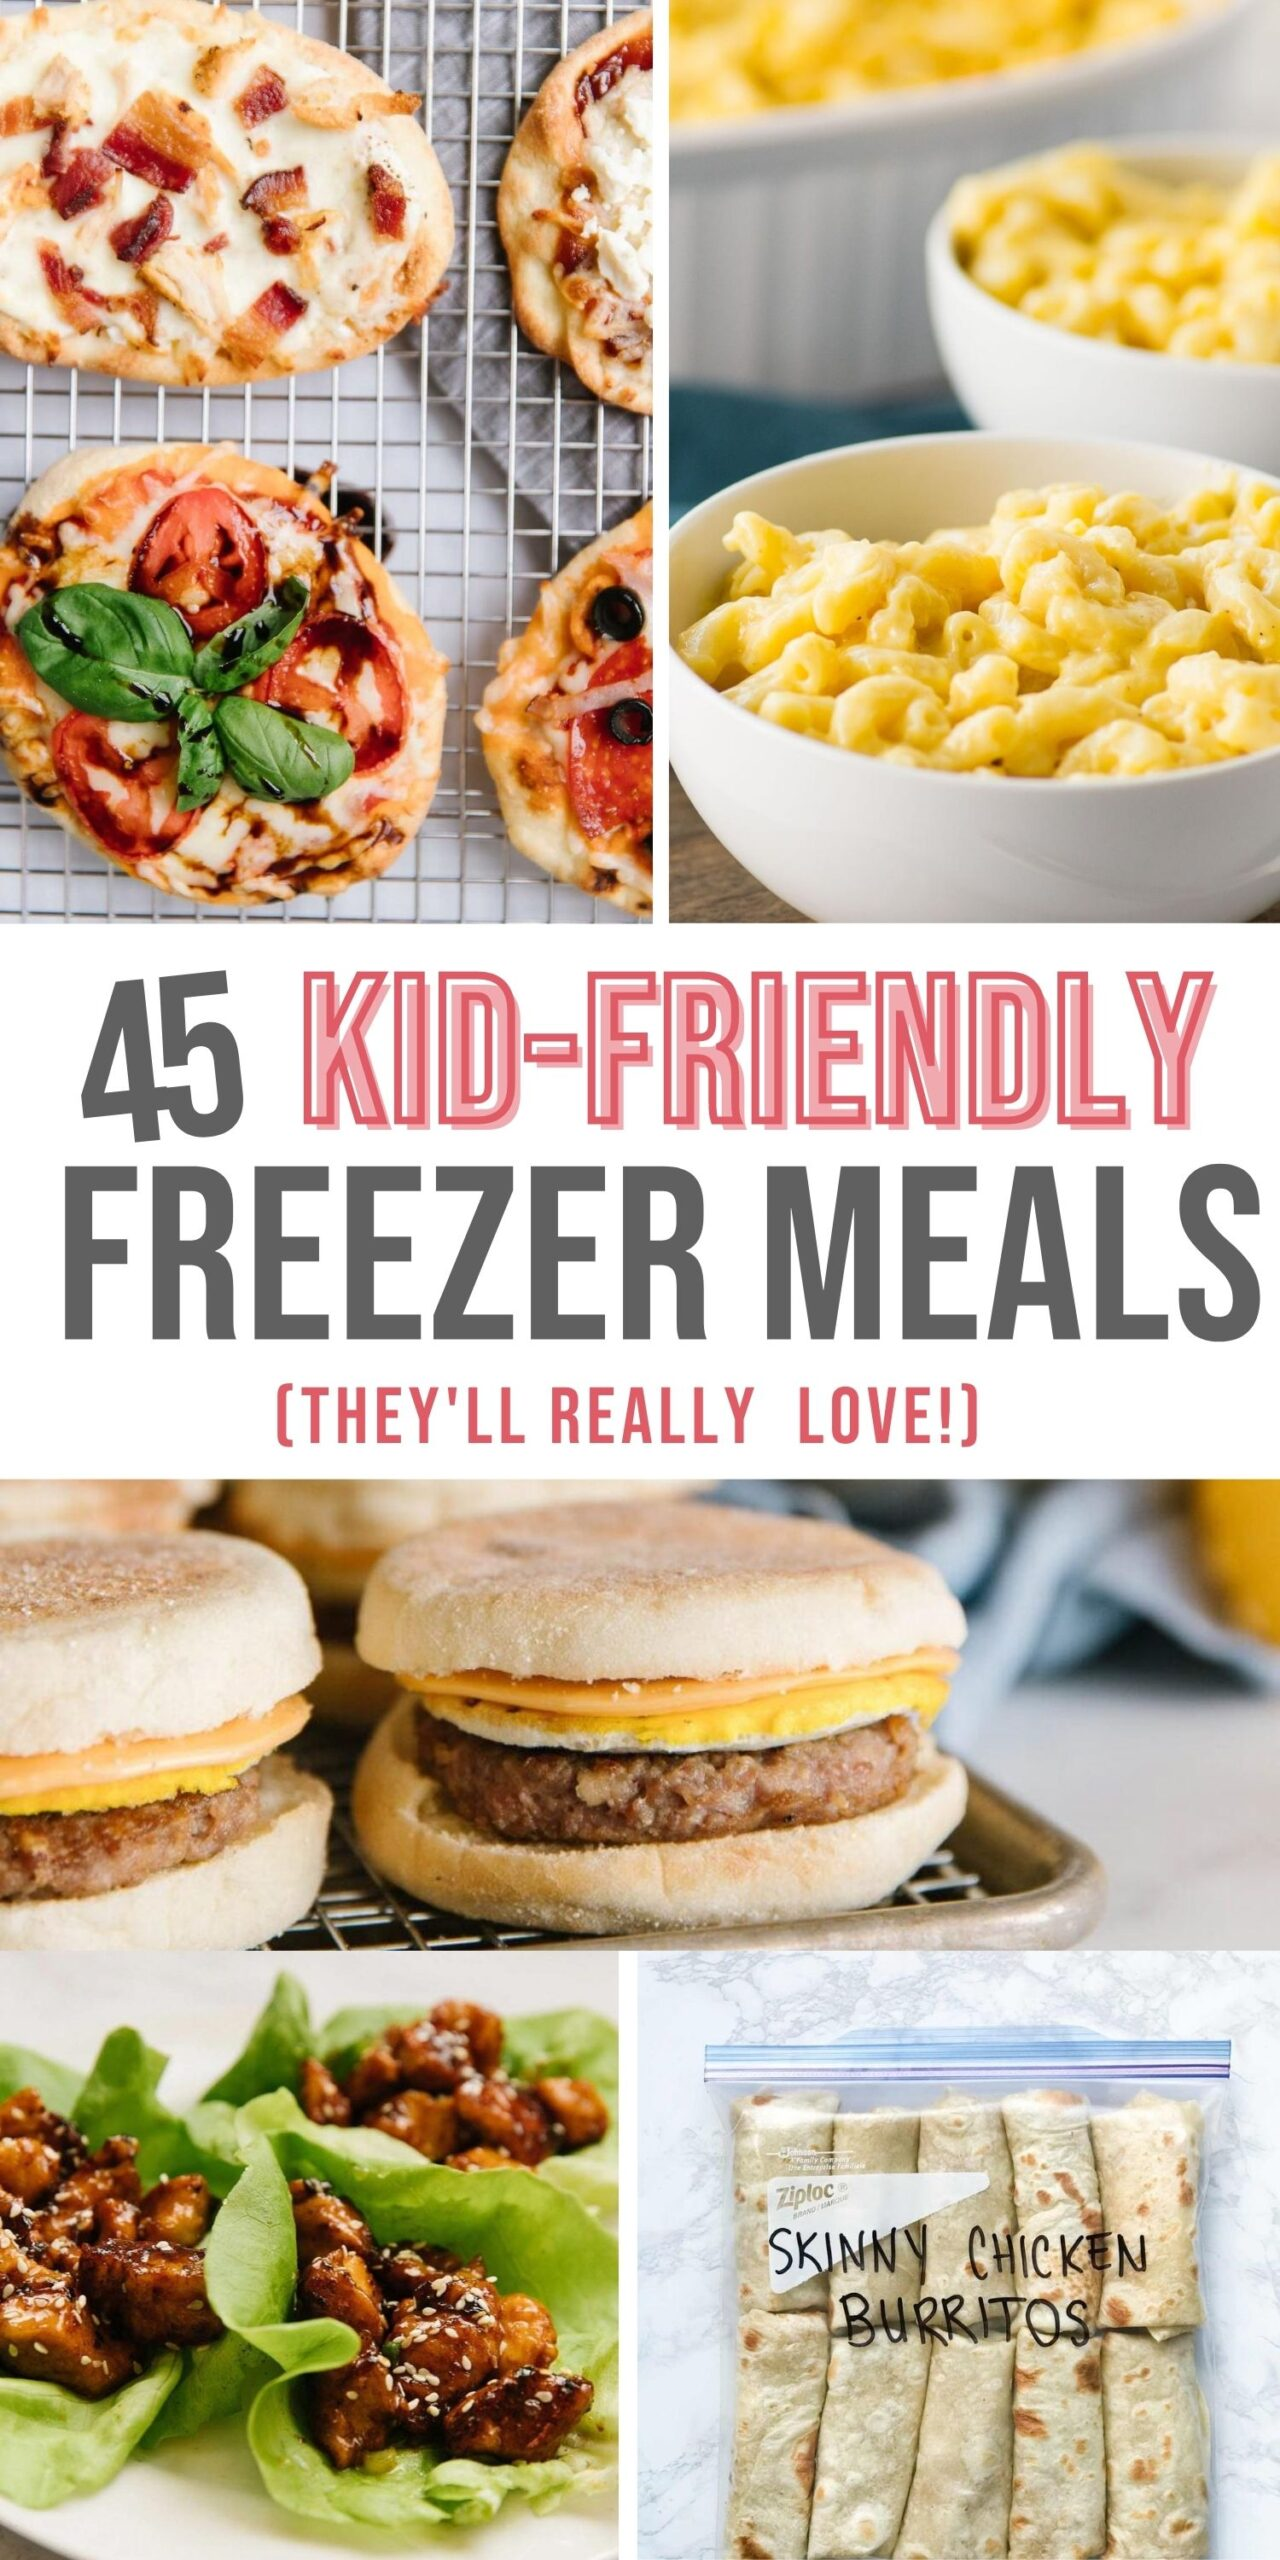 45 kid-friendly freezer meals that they'll really love and different pictures of those meals.